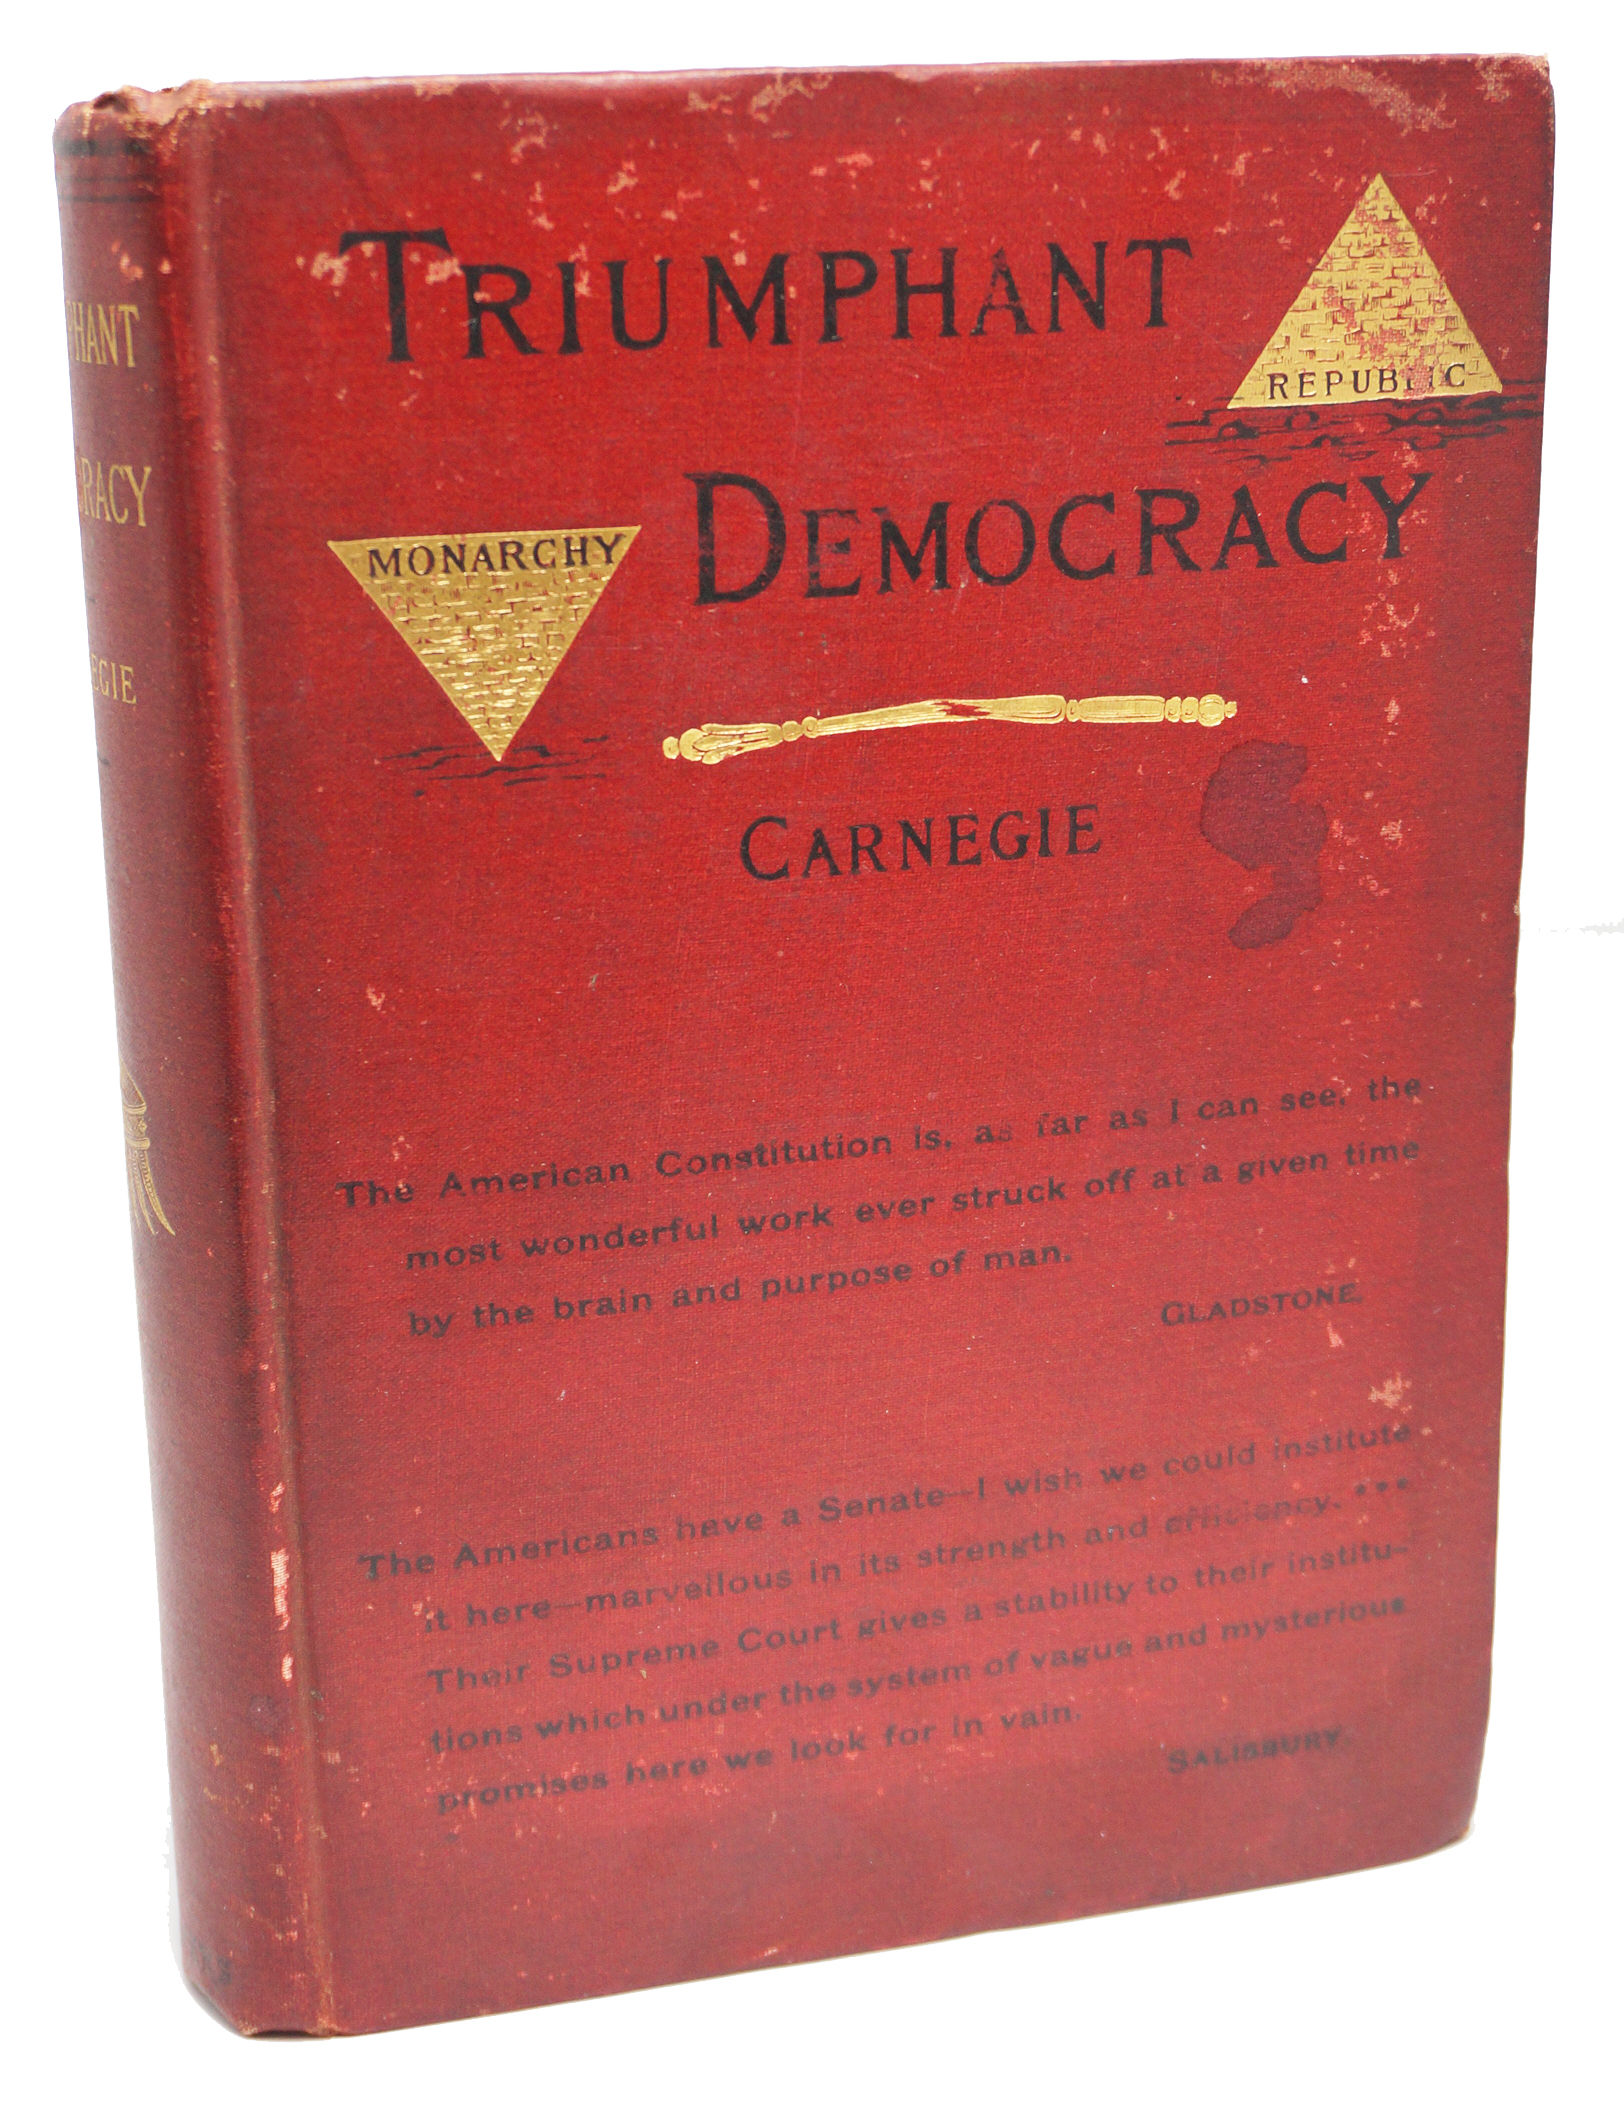 Triumphant Democracy by Andrew Carnegie - 1886